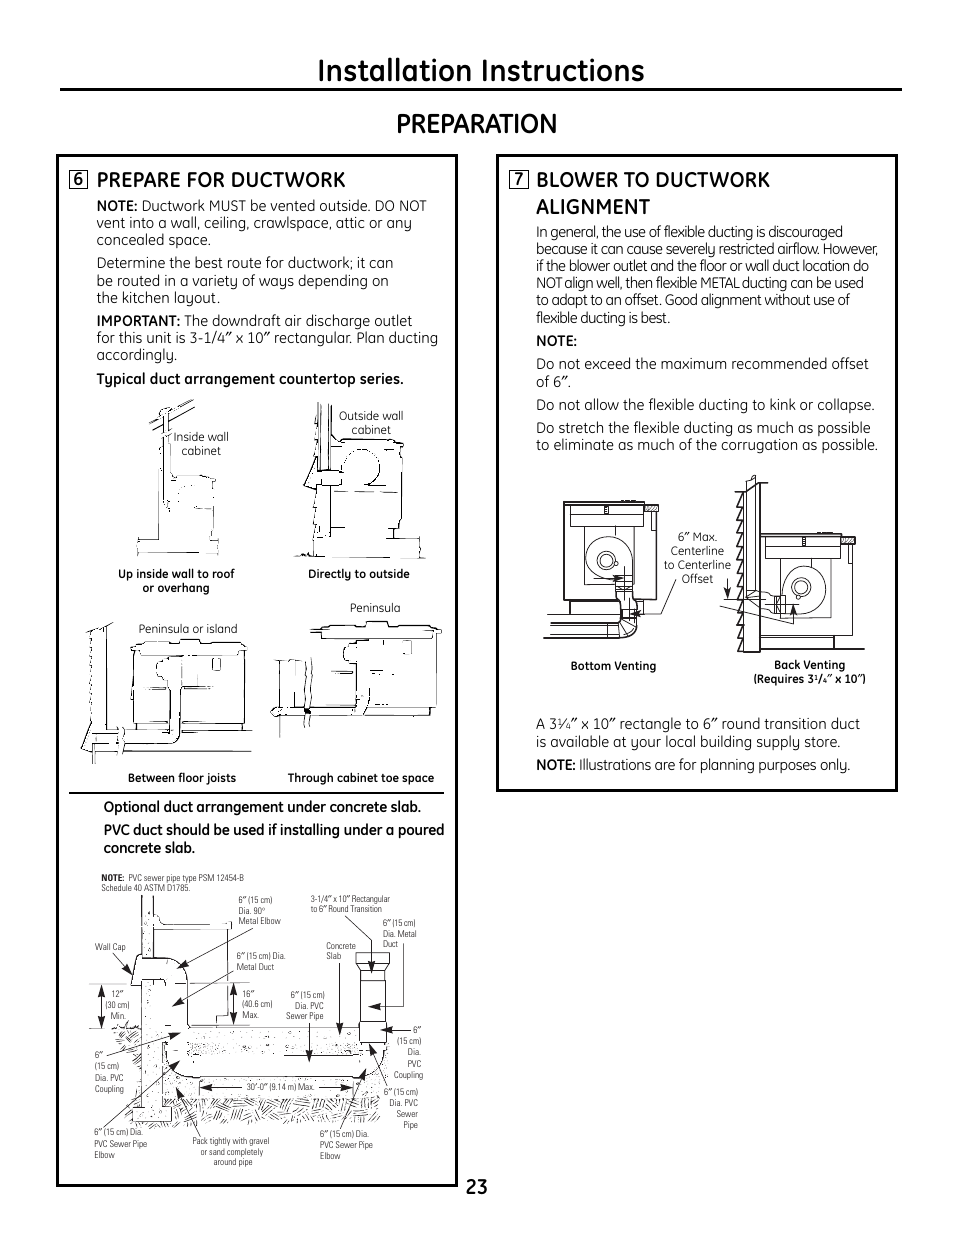 Installation instructions, Preparation, Prepare for ductwork